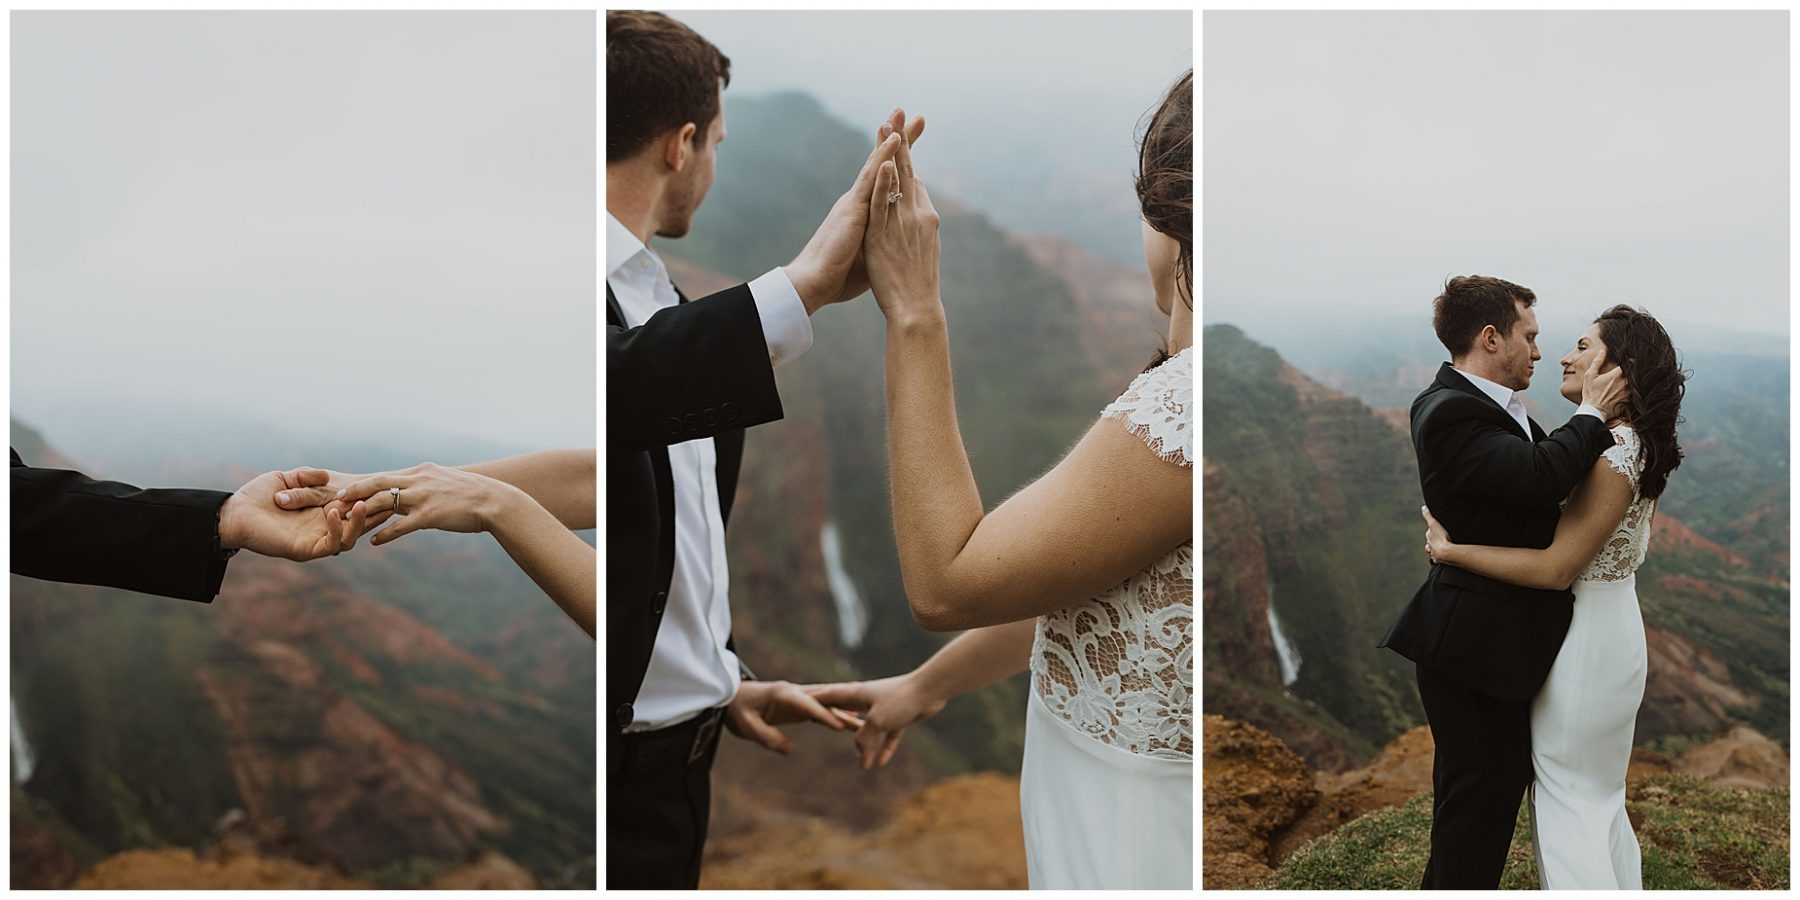 bride and groom sharing an intimate ceremony during their elopement on the cliffs of Waimea Canyon in Kauai, Hawaii